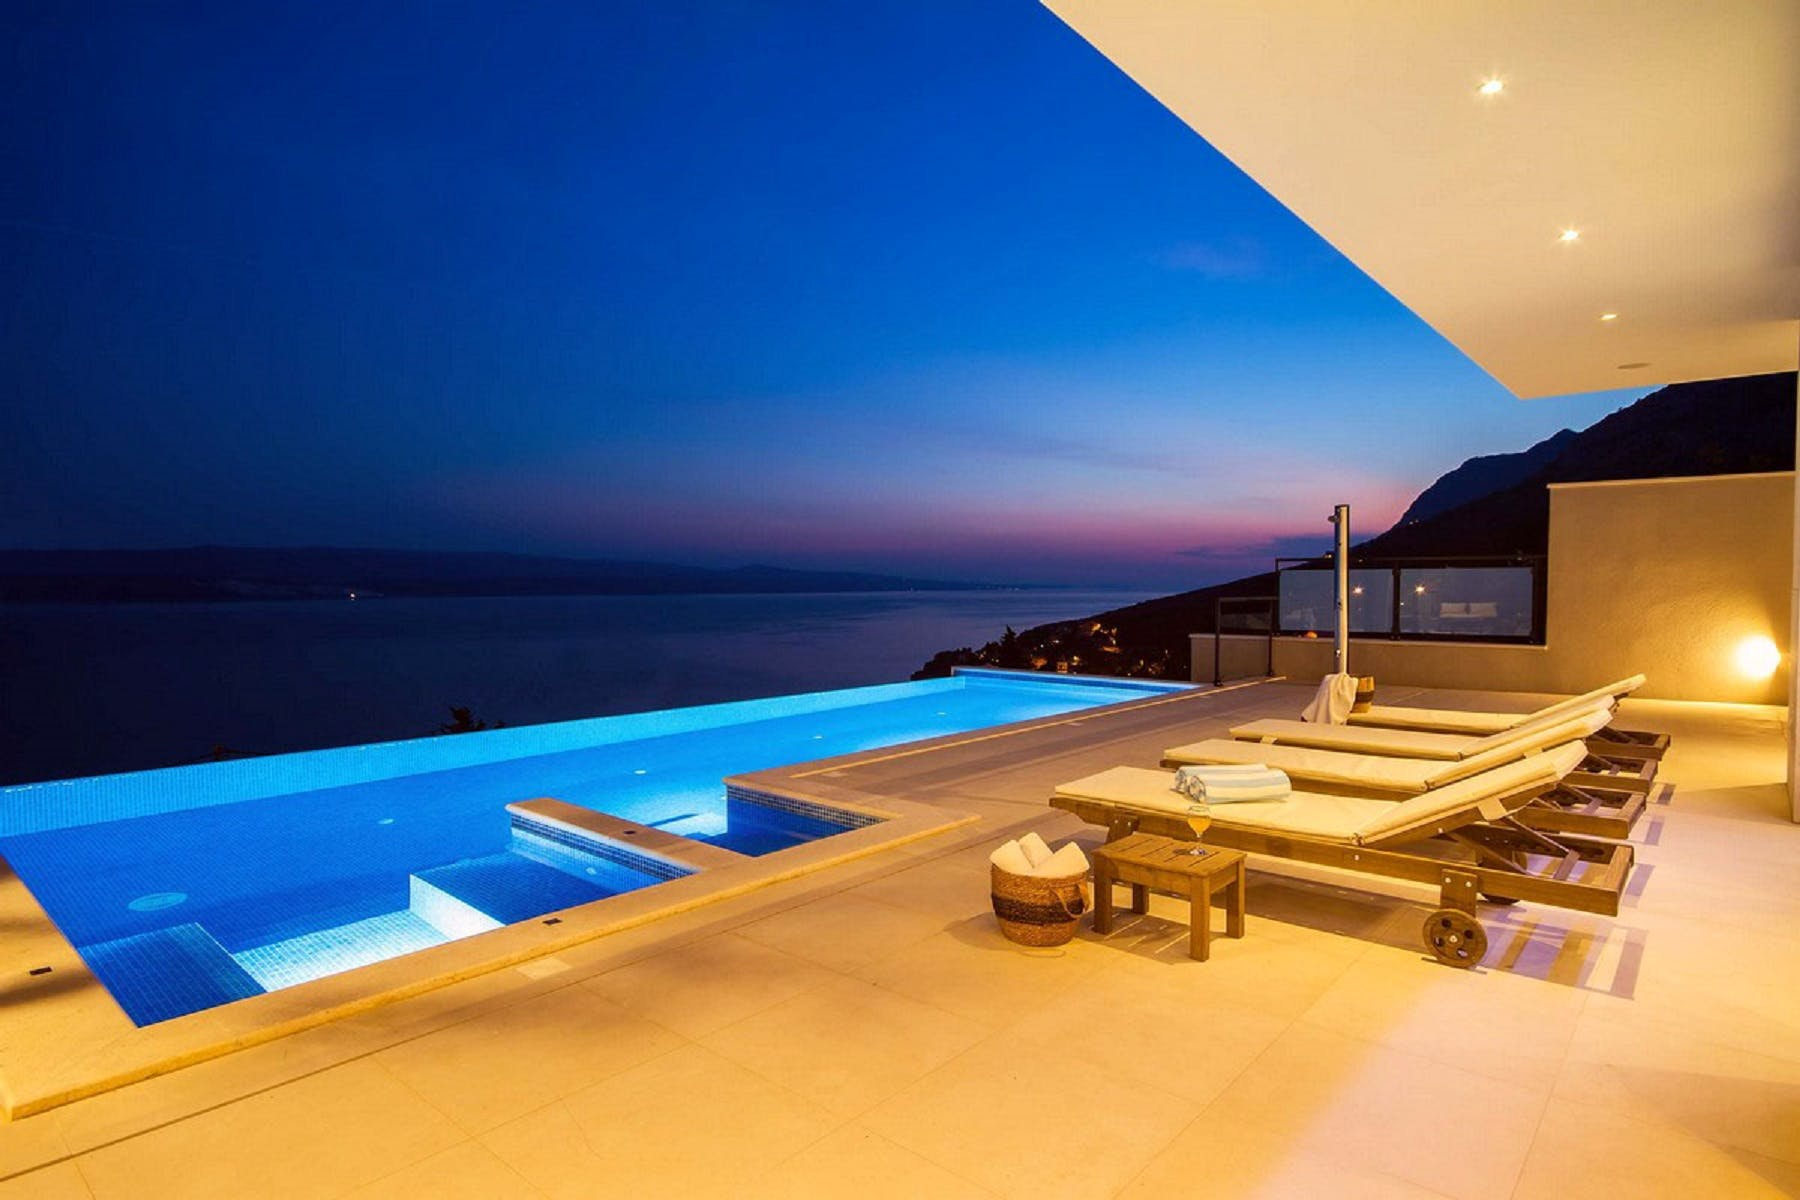 Ideal place for relaxation in the evening